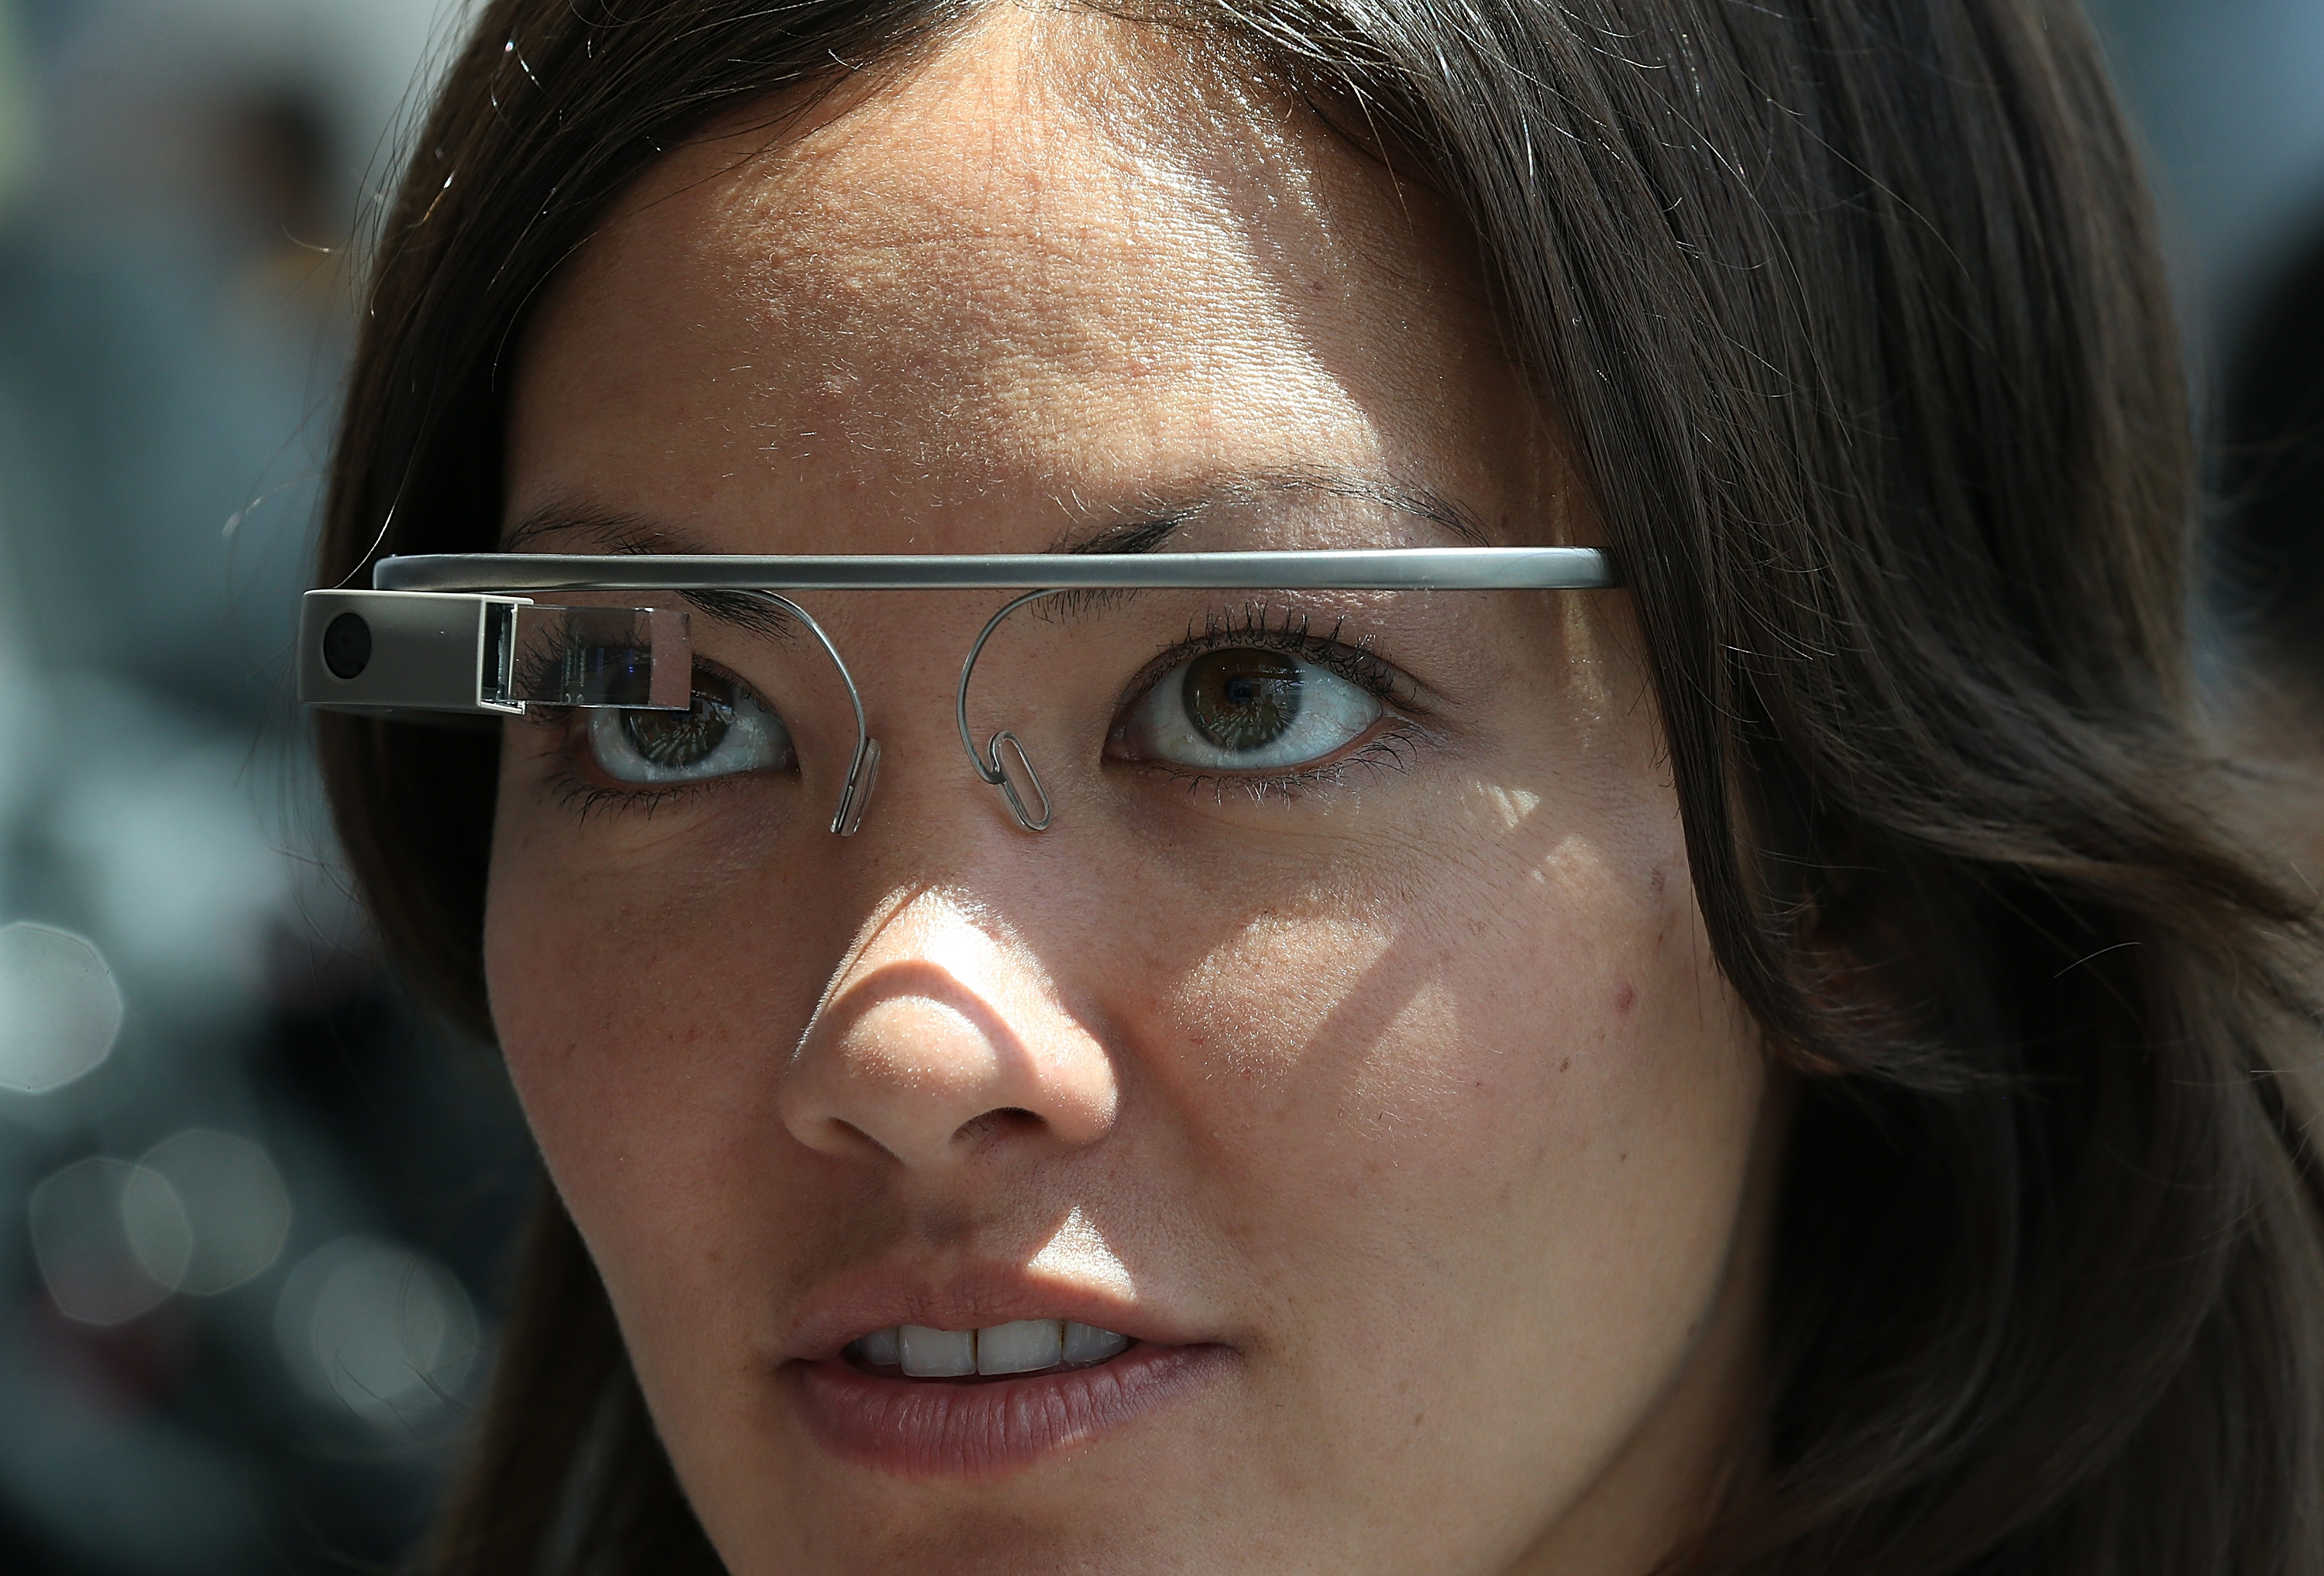 Google Glass has 'zero chance' of becoming mainstream, says Khosla Ventures' Keith Rabois